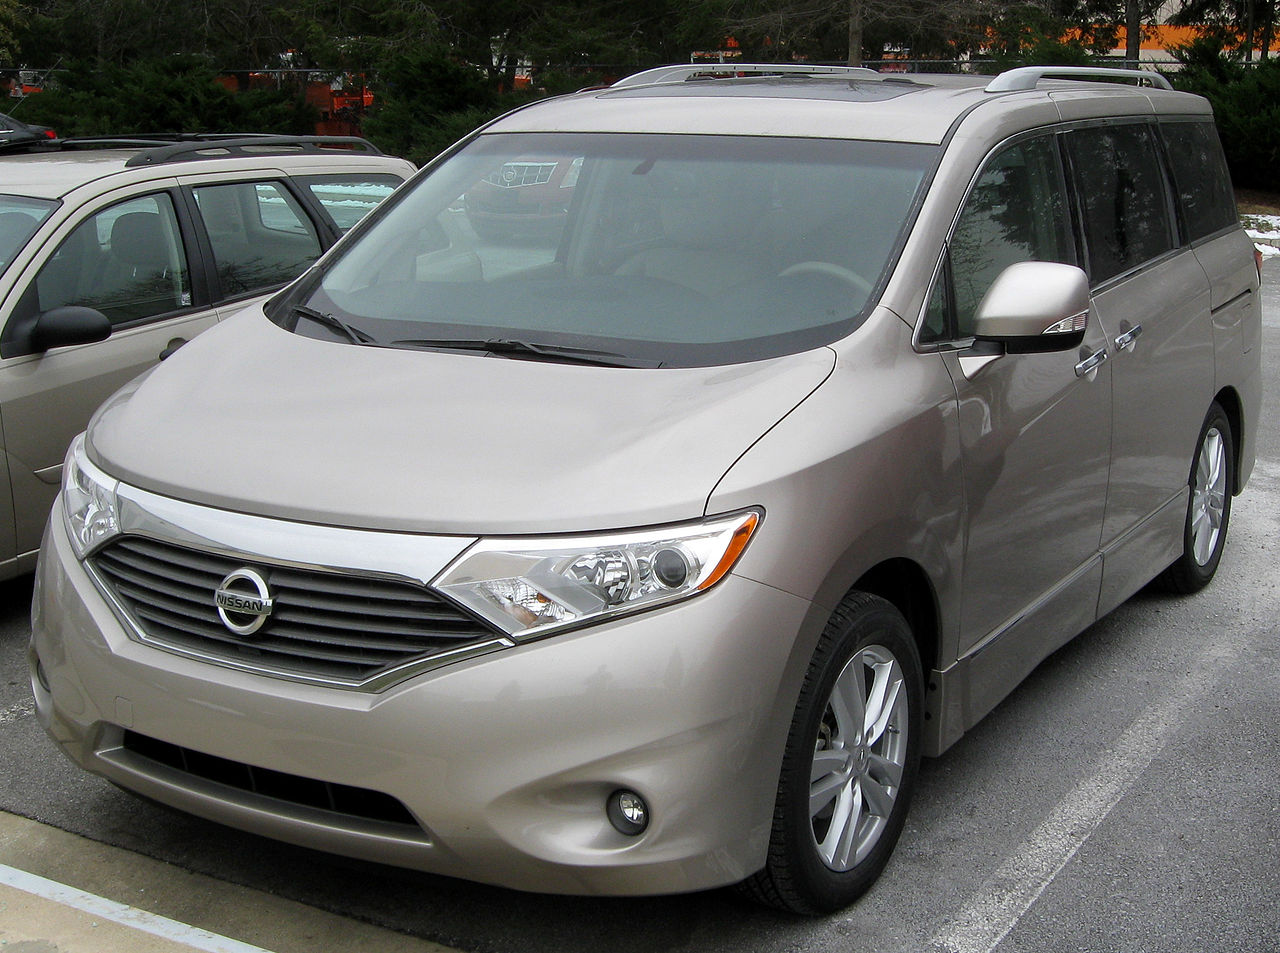 File2011 nissan quest le 12 22 2010g wikimedia commons file2011 nissan quest le 12 22 2010g vanachro Gallery